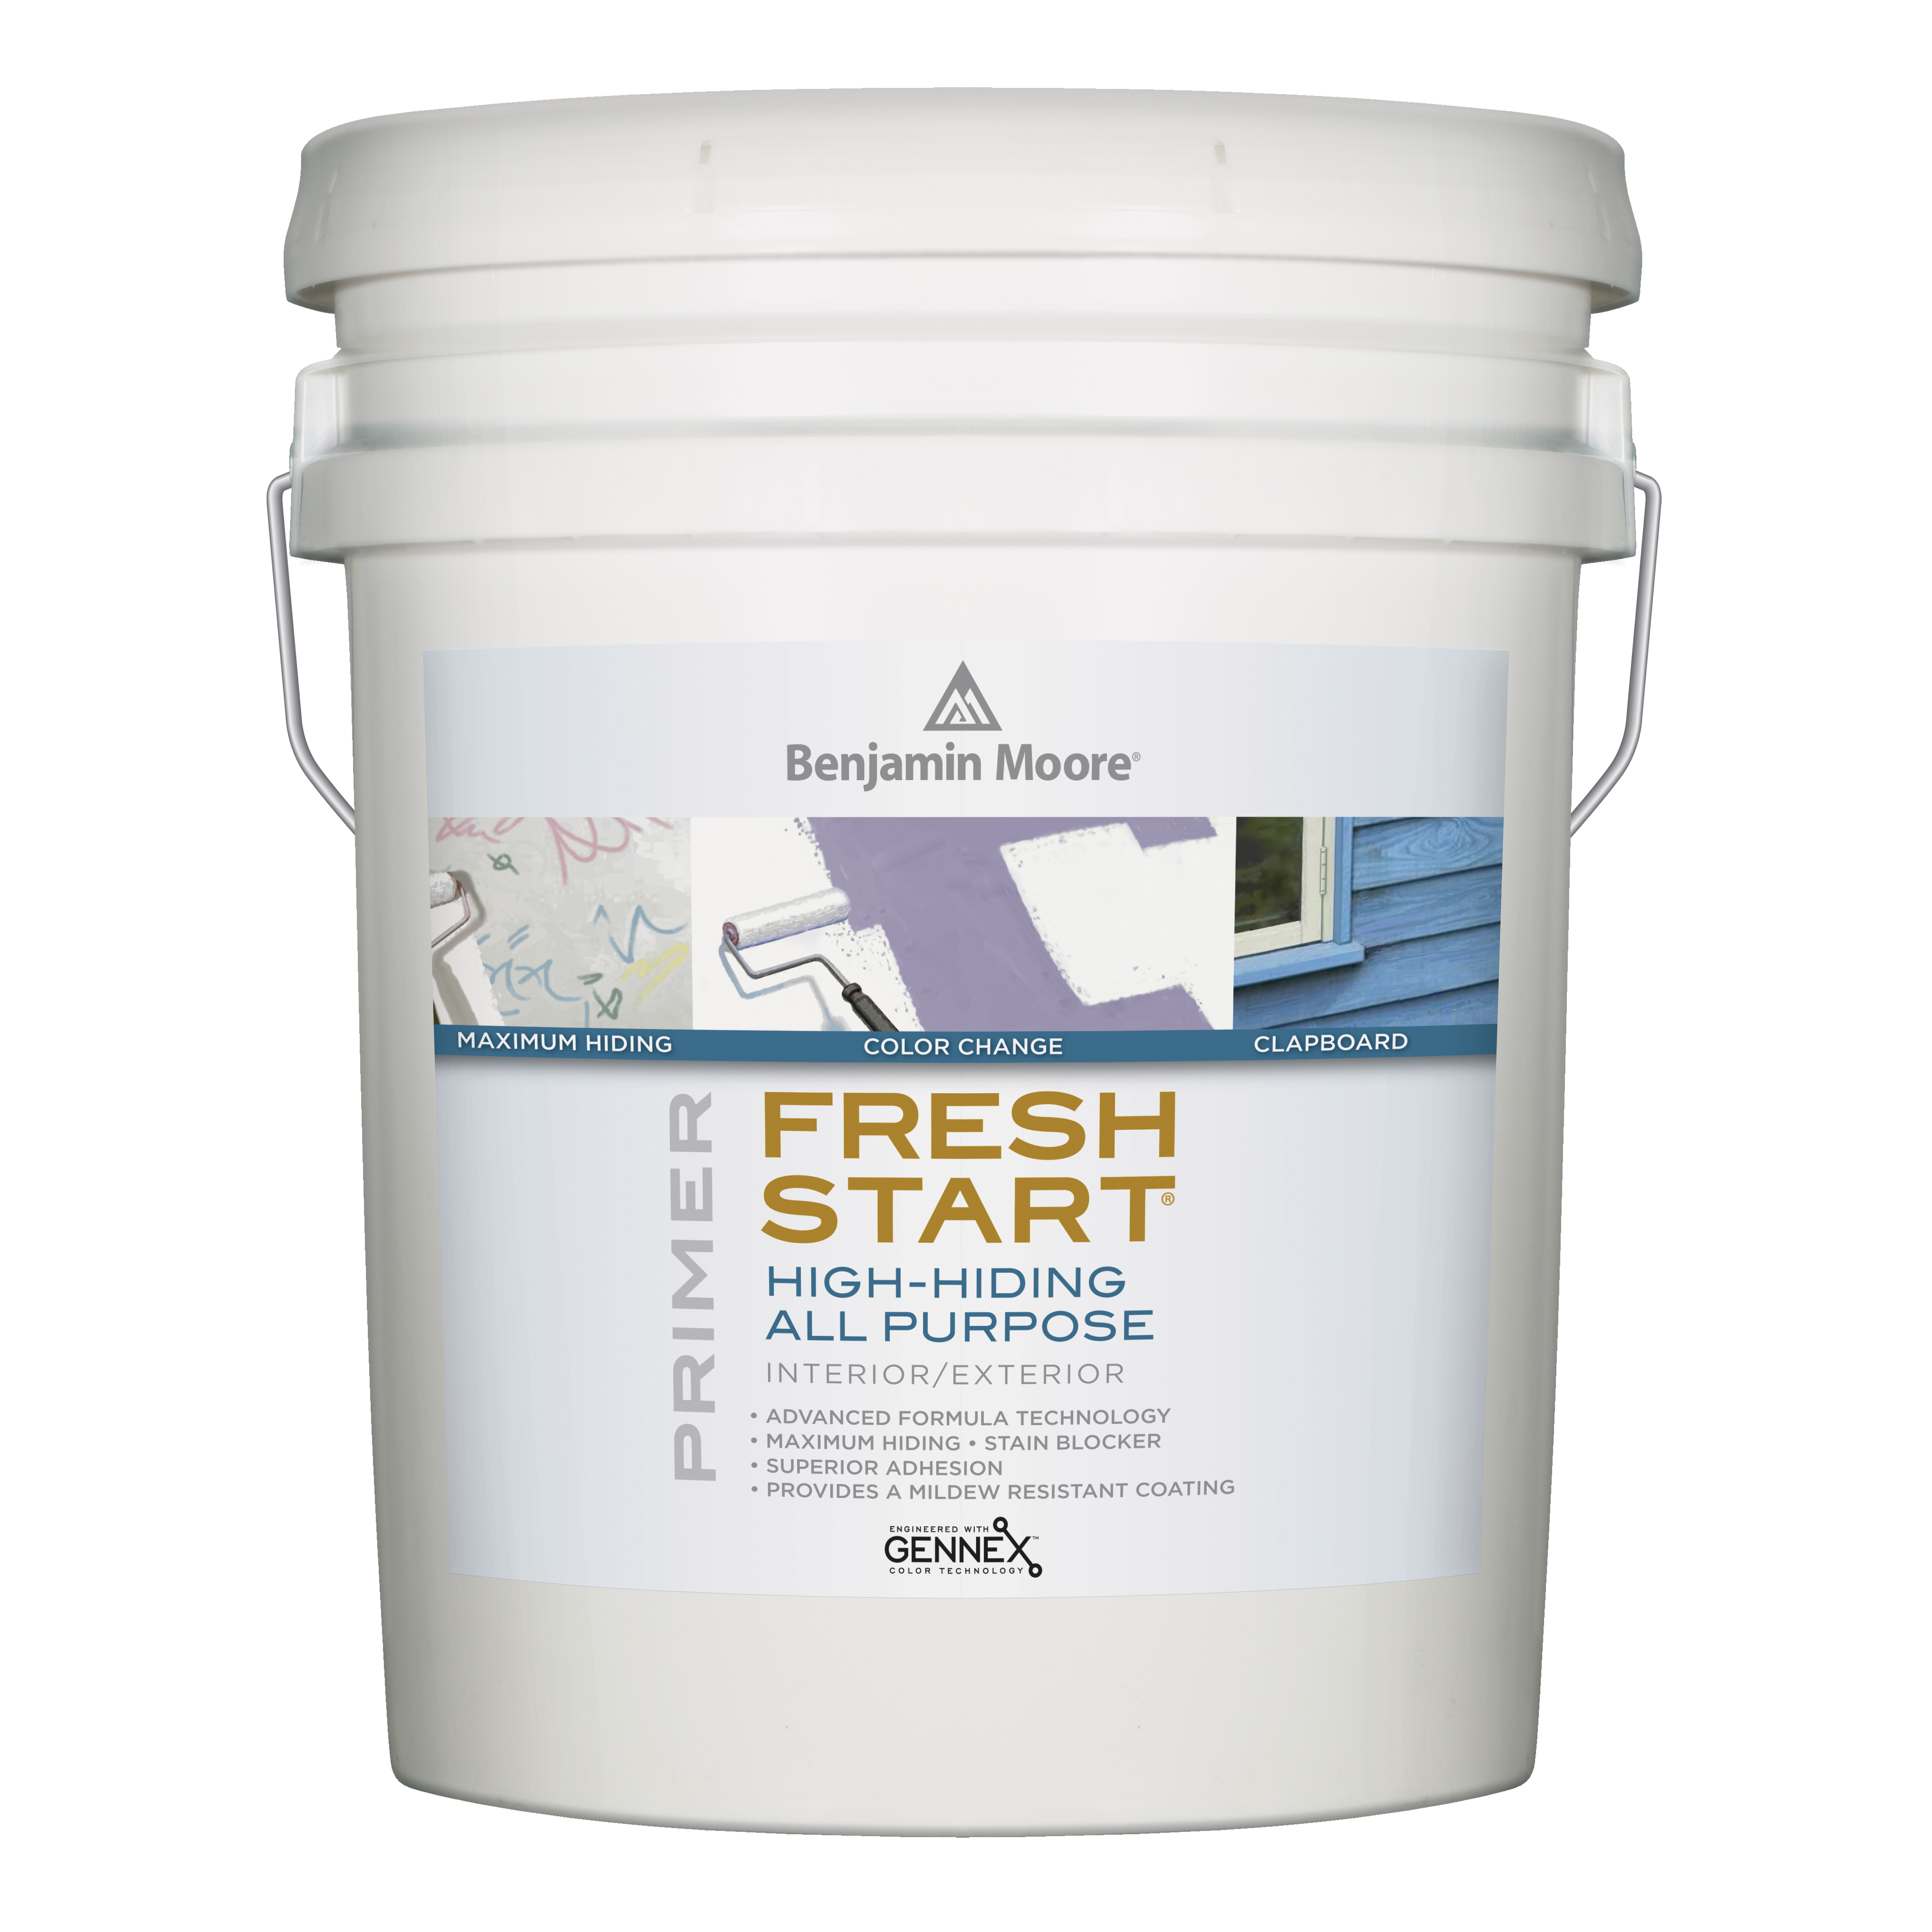 Picture of Benjamin Moore FRESH START 004600-005 Exterior Primer, Luster, White, 5 gal